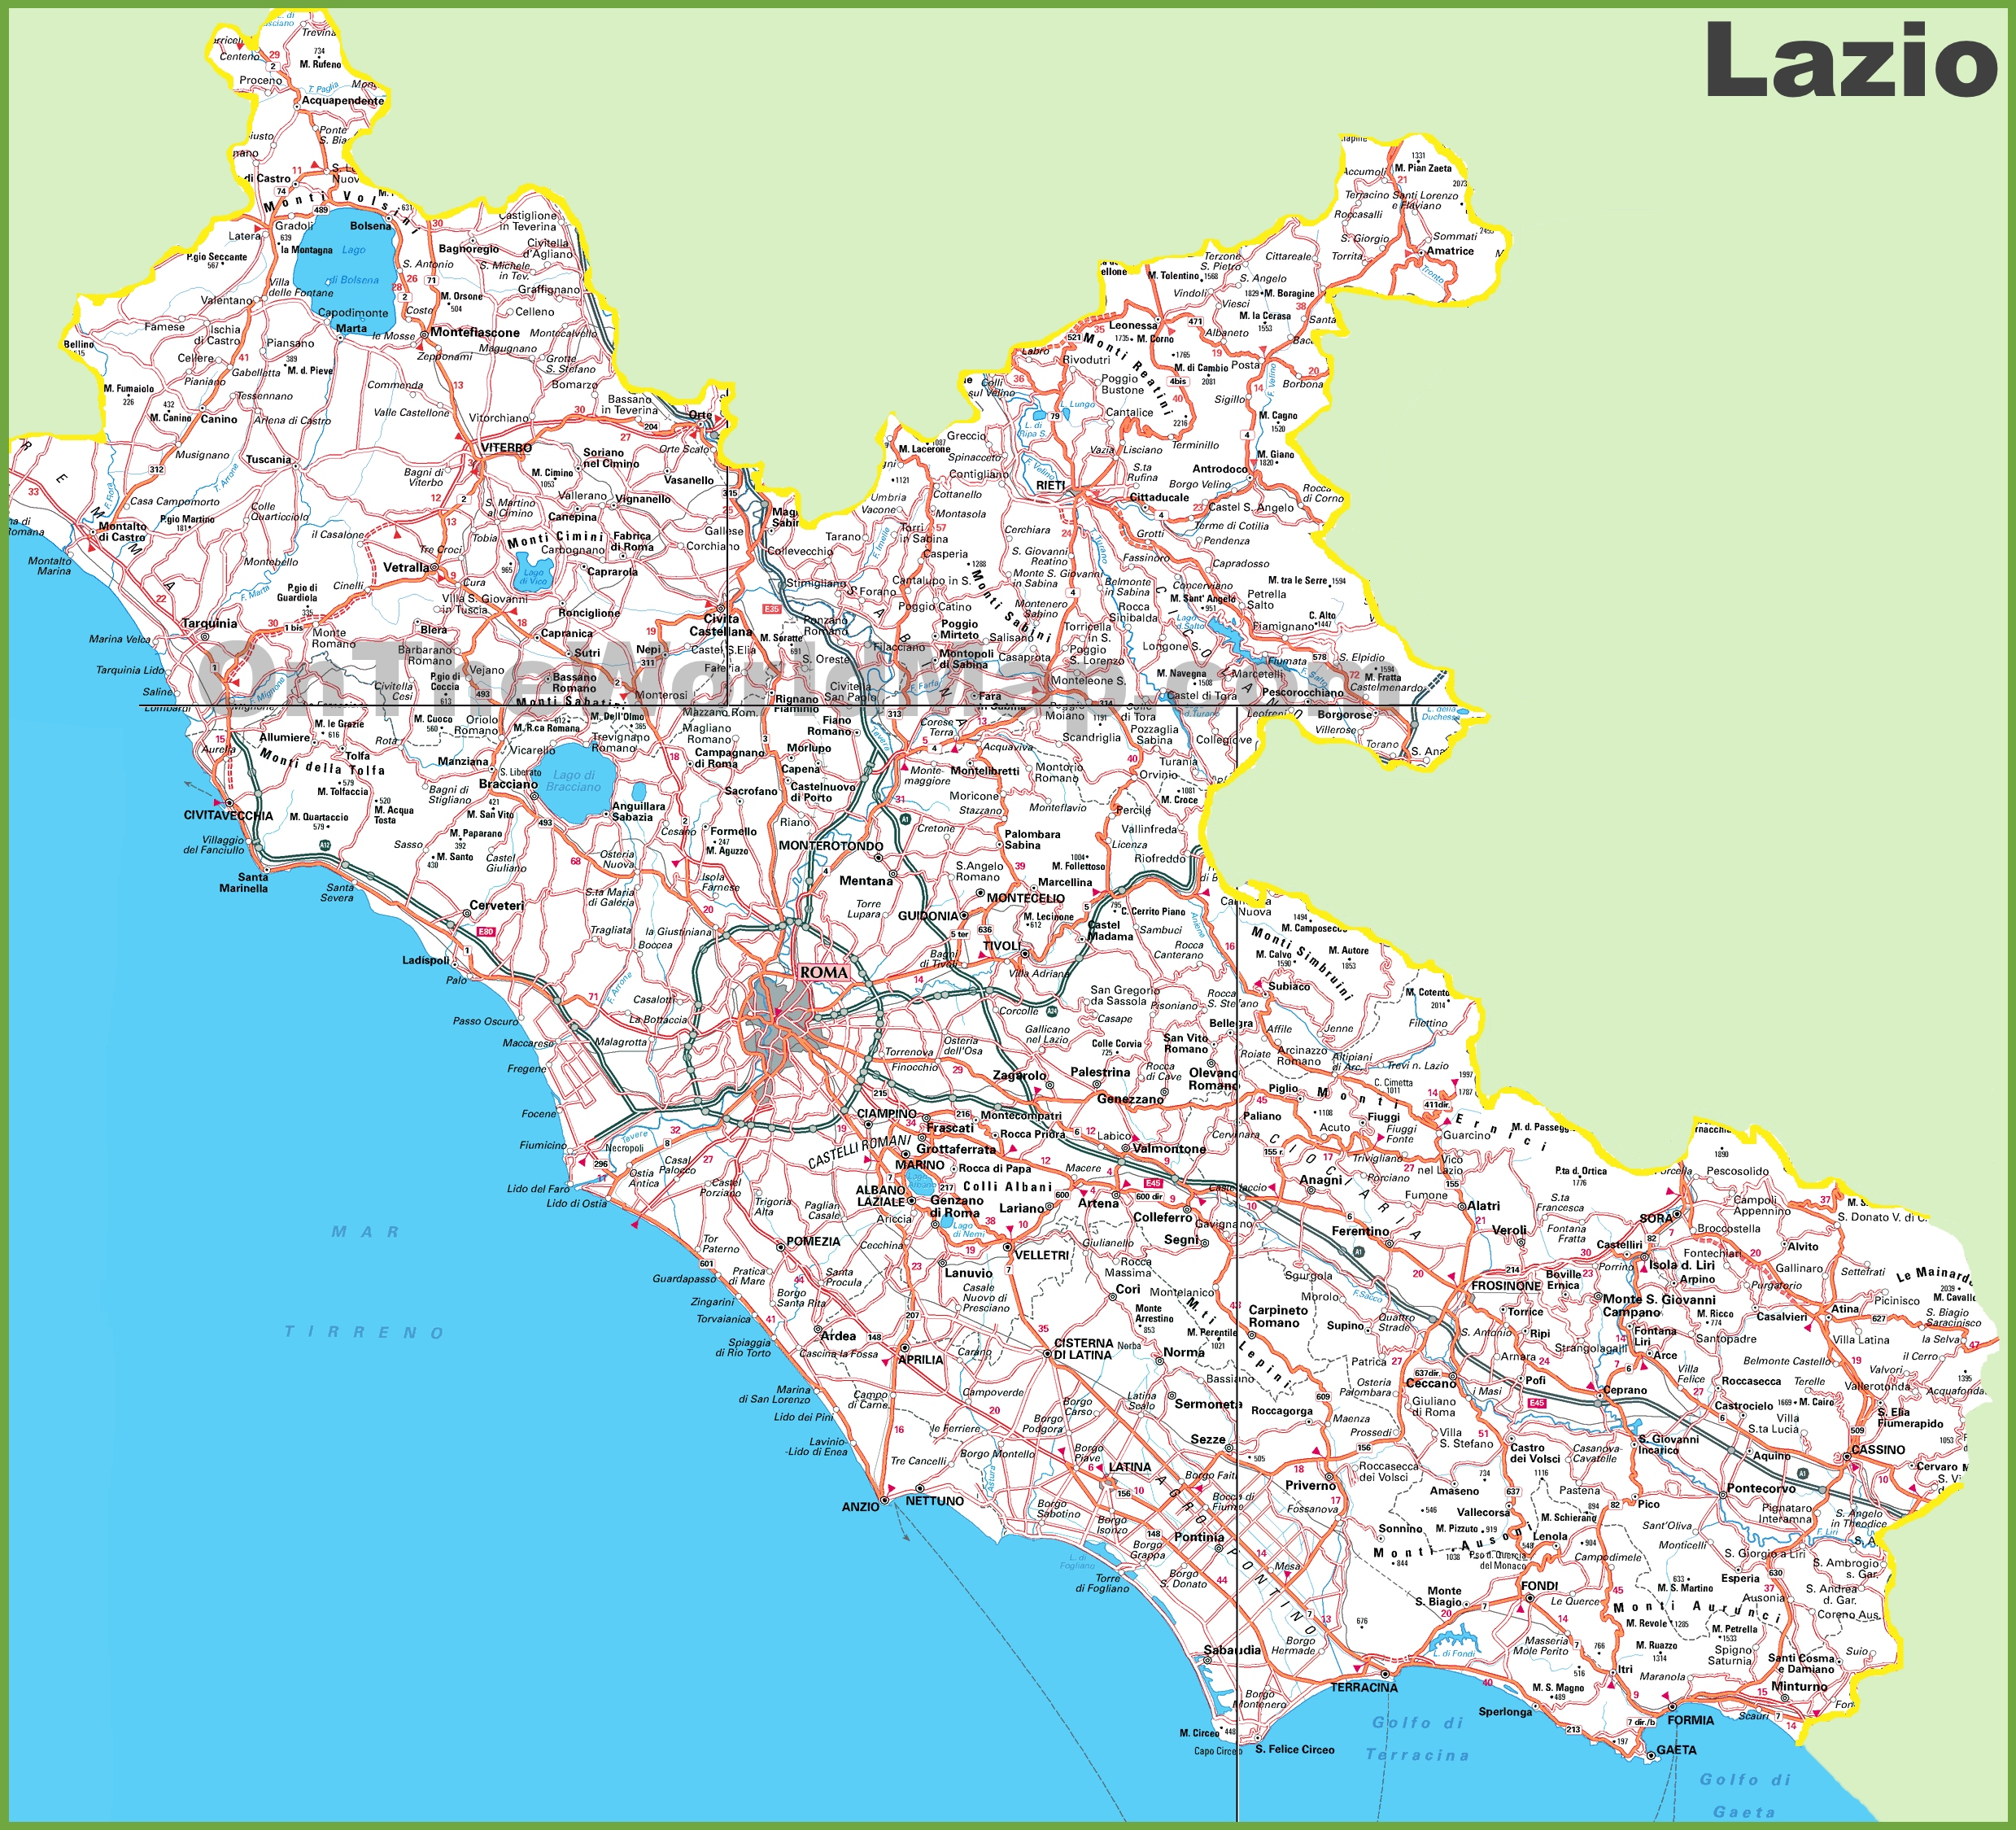 Map Of Towns In Italy.Large Detailed Map Of Lazio With Cities And Towns